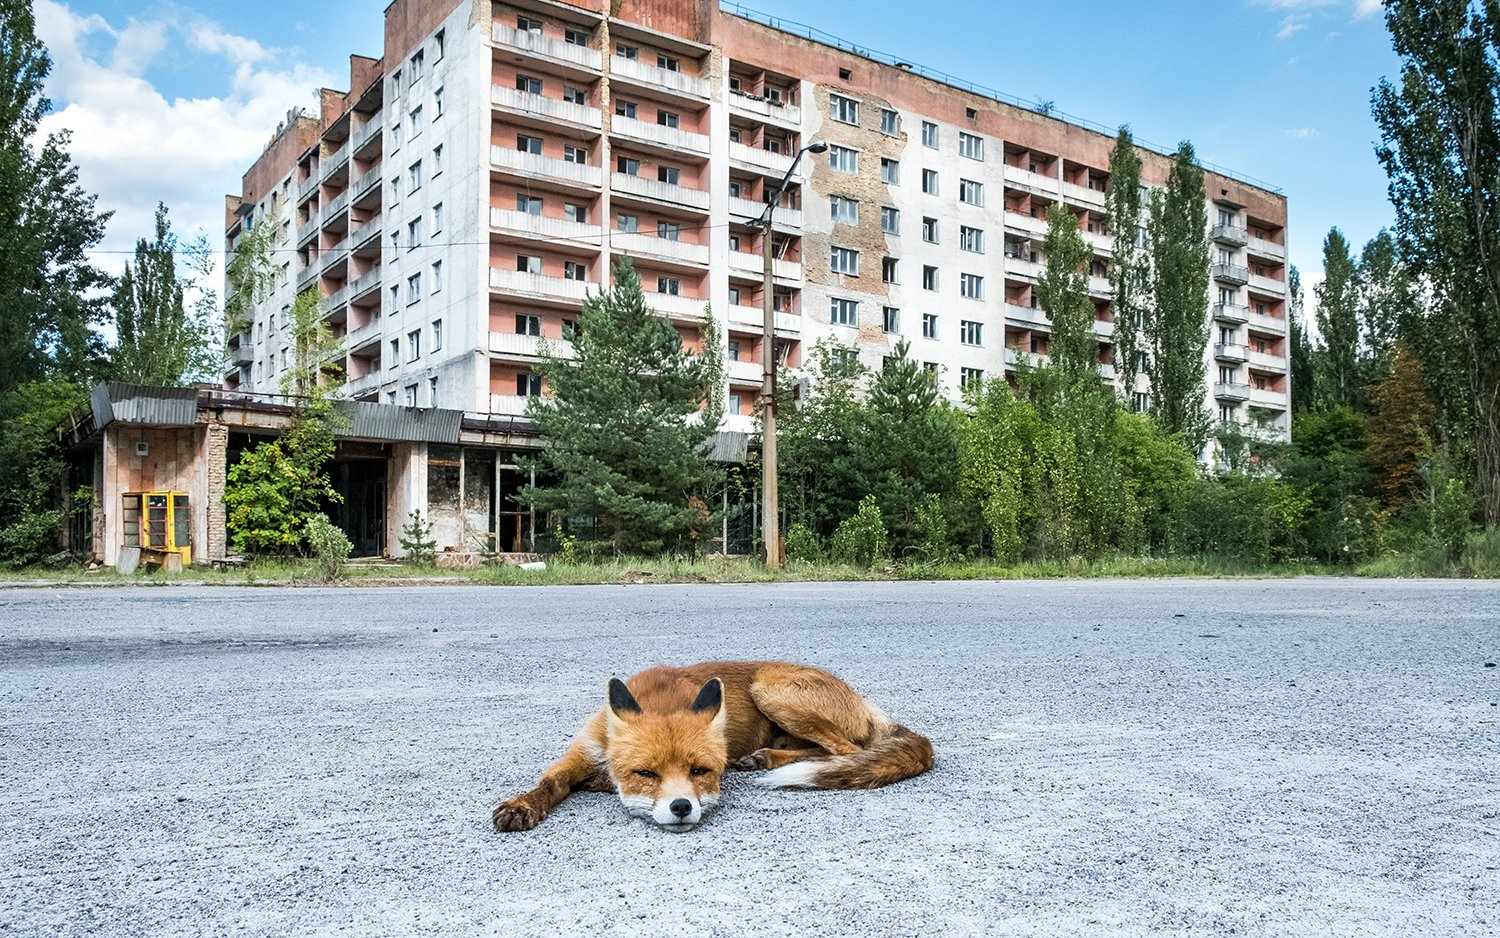 Is It Safe to Visit Chernobyl? | Live Science